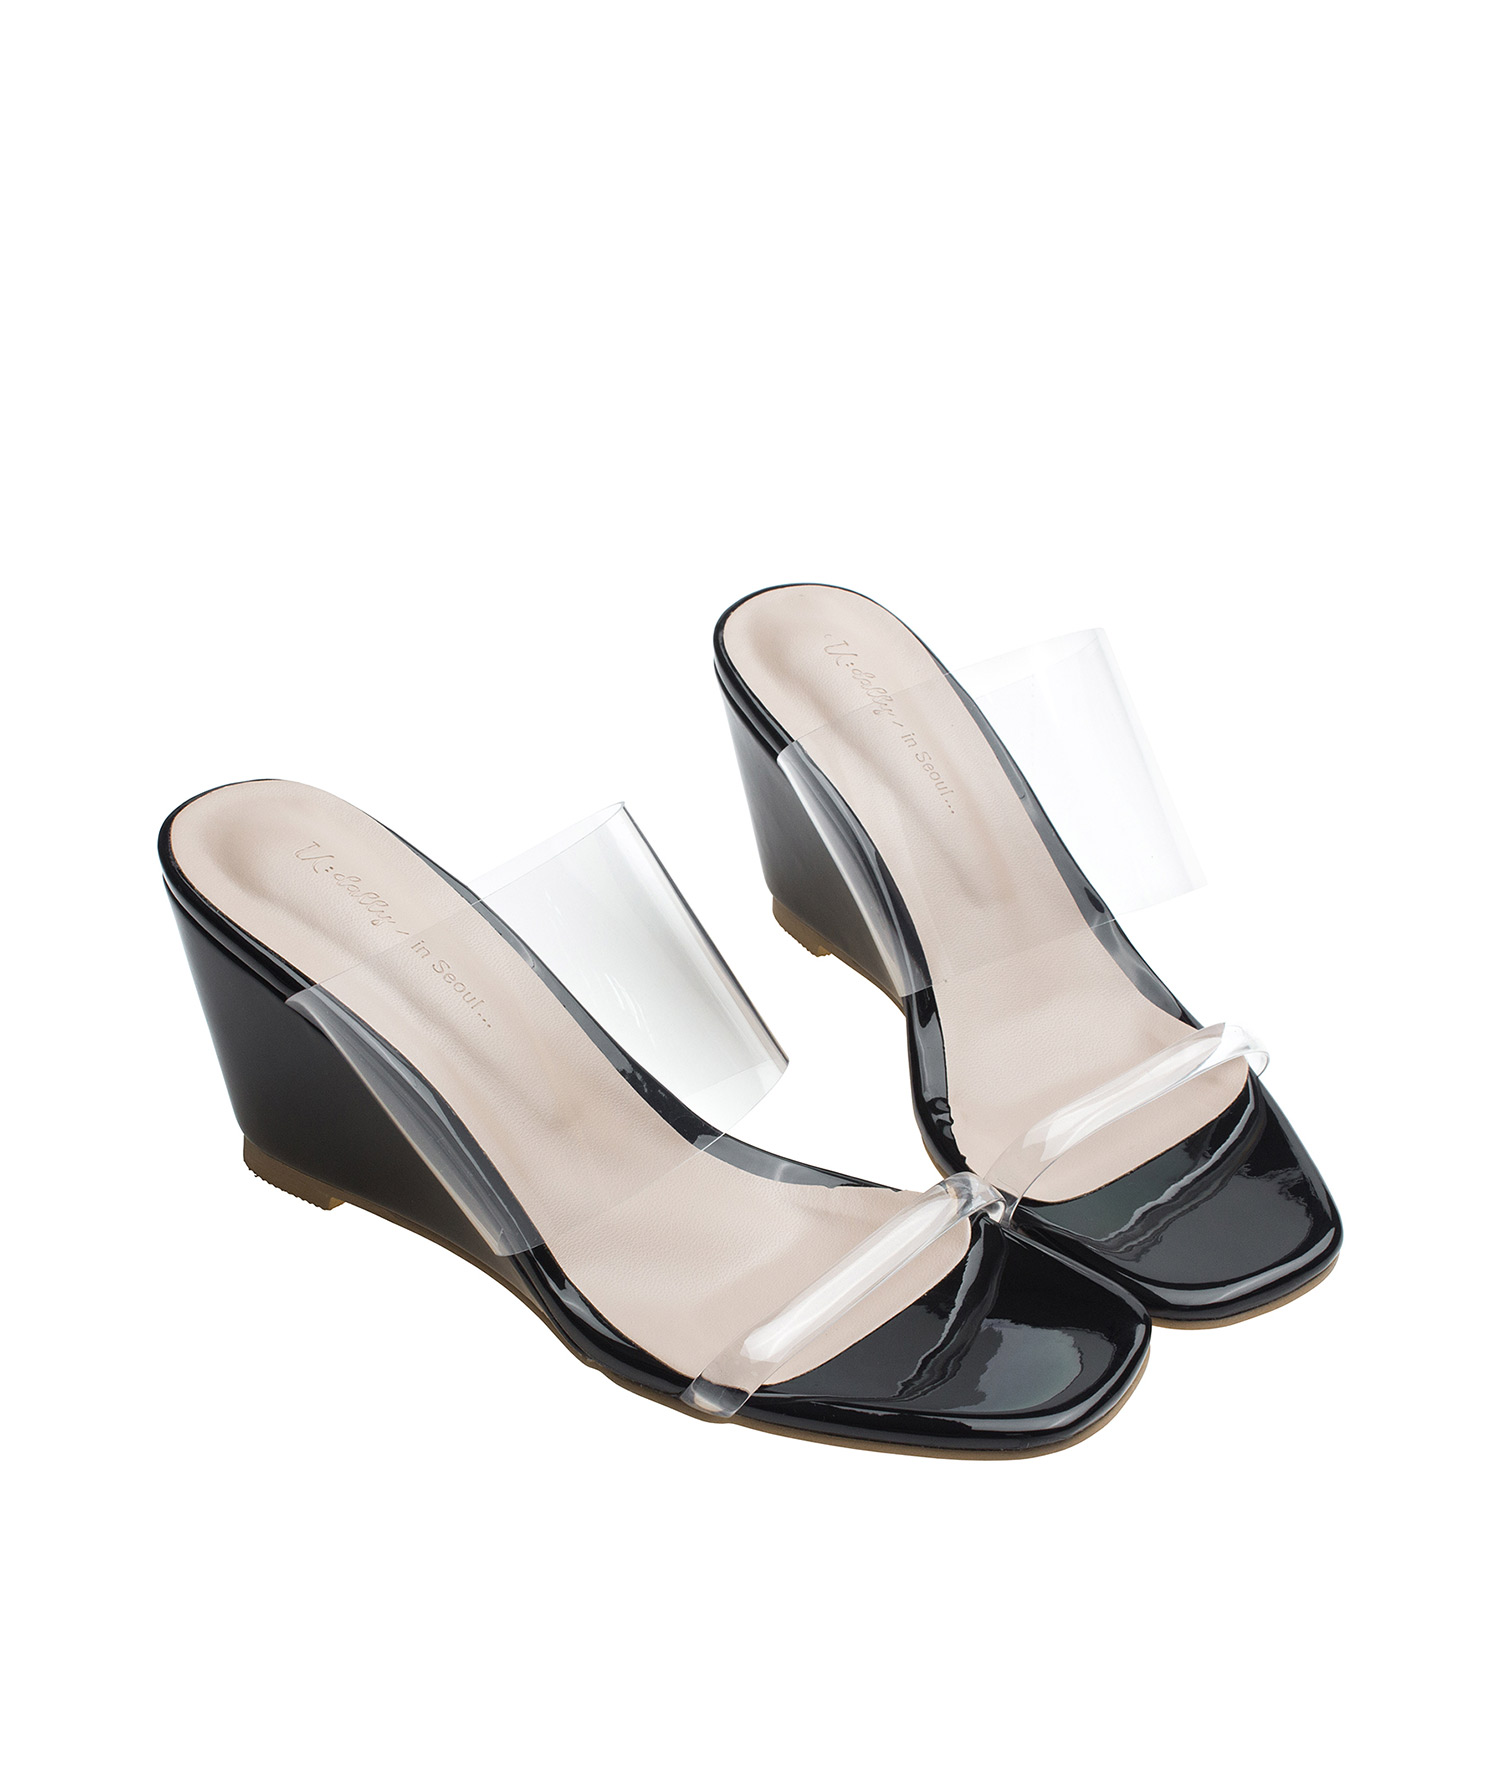 Sandals Clear 5 High Heel Color Size Wedge